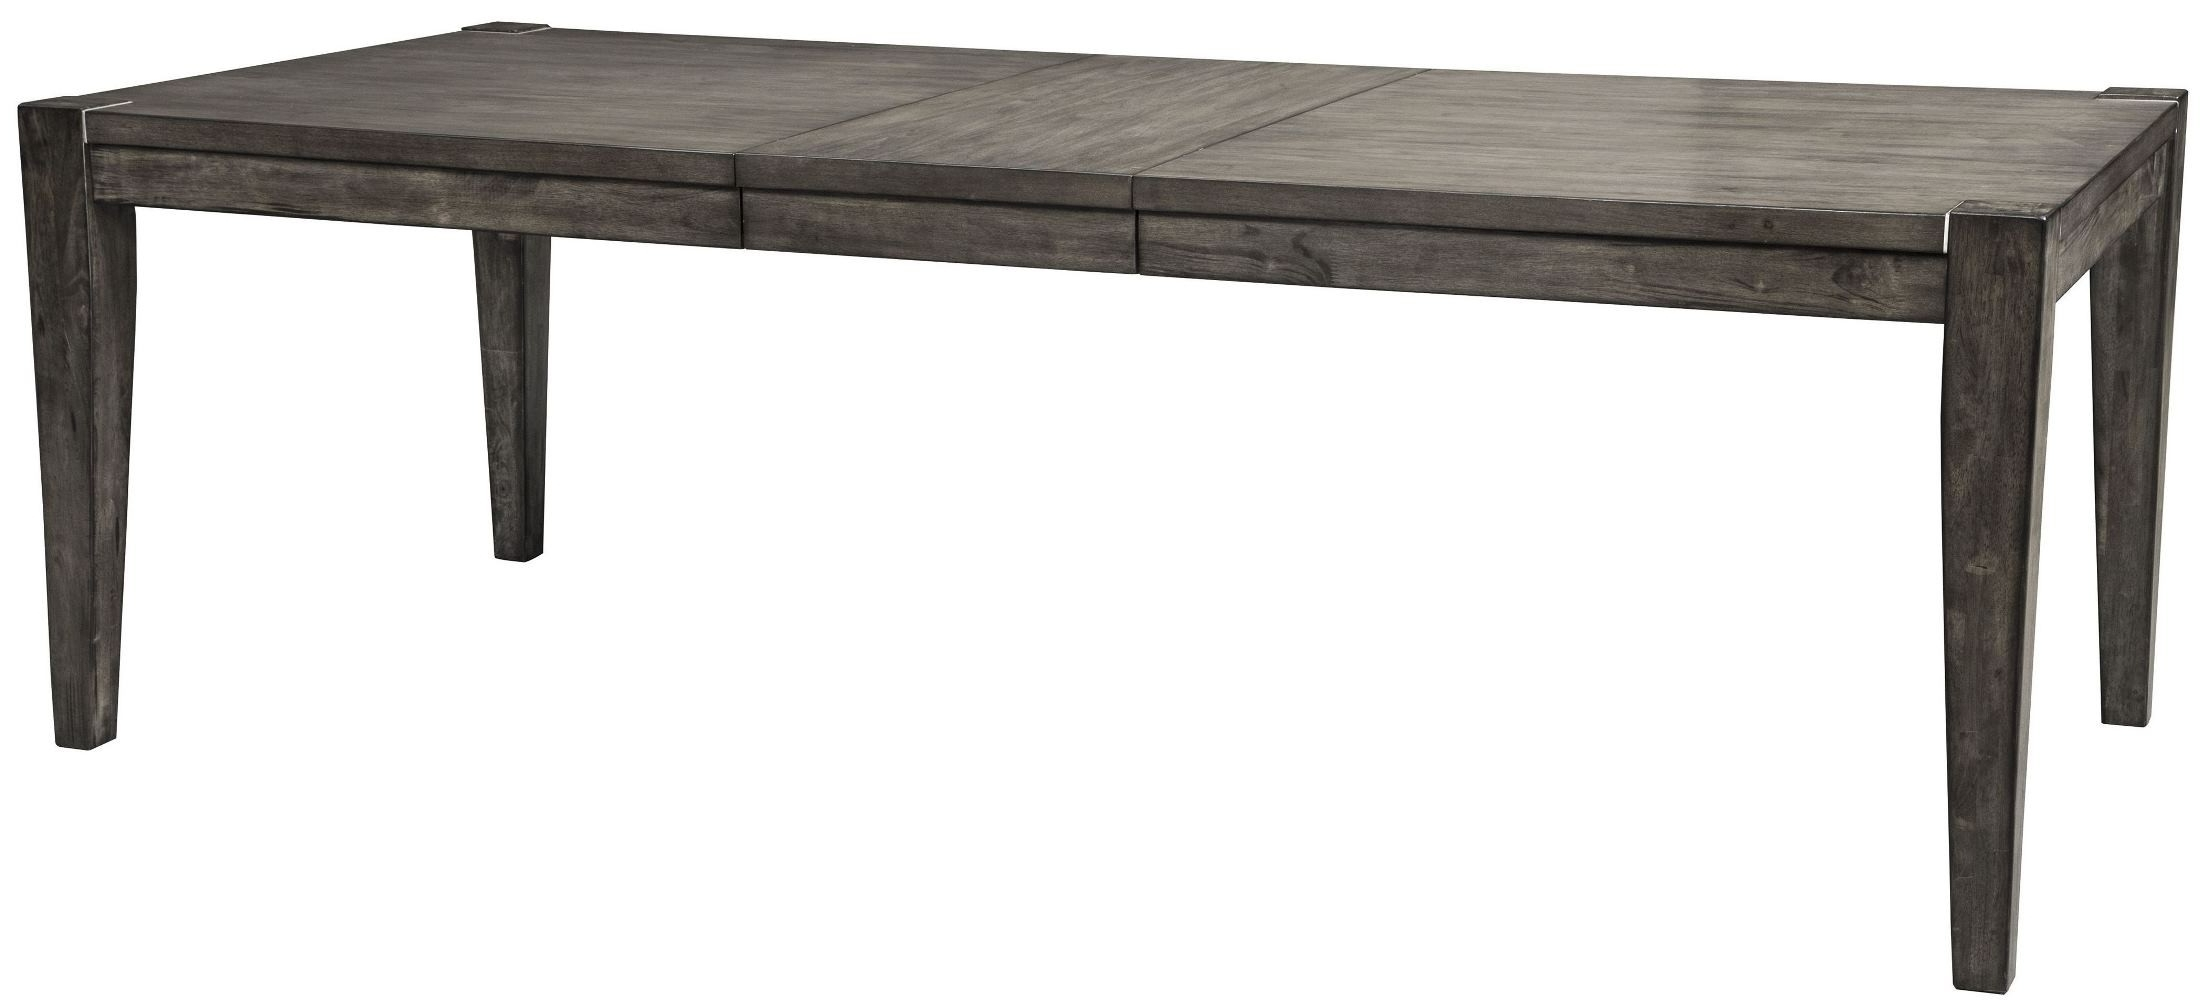 Signature Designashley Chadoni Gray Rectangular Extendable Throughout Newest Craftsman Rectangle Extension Dining Tables (View 17 of 25)